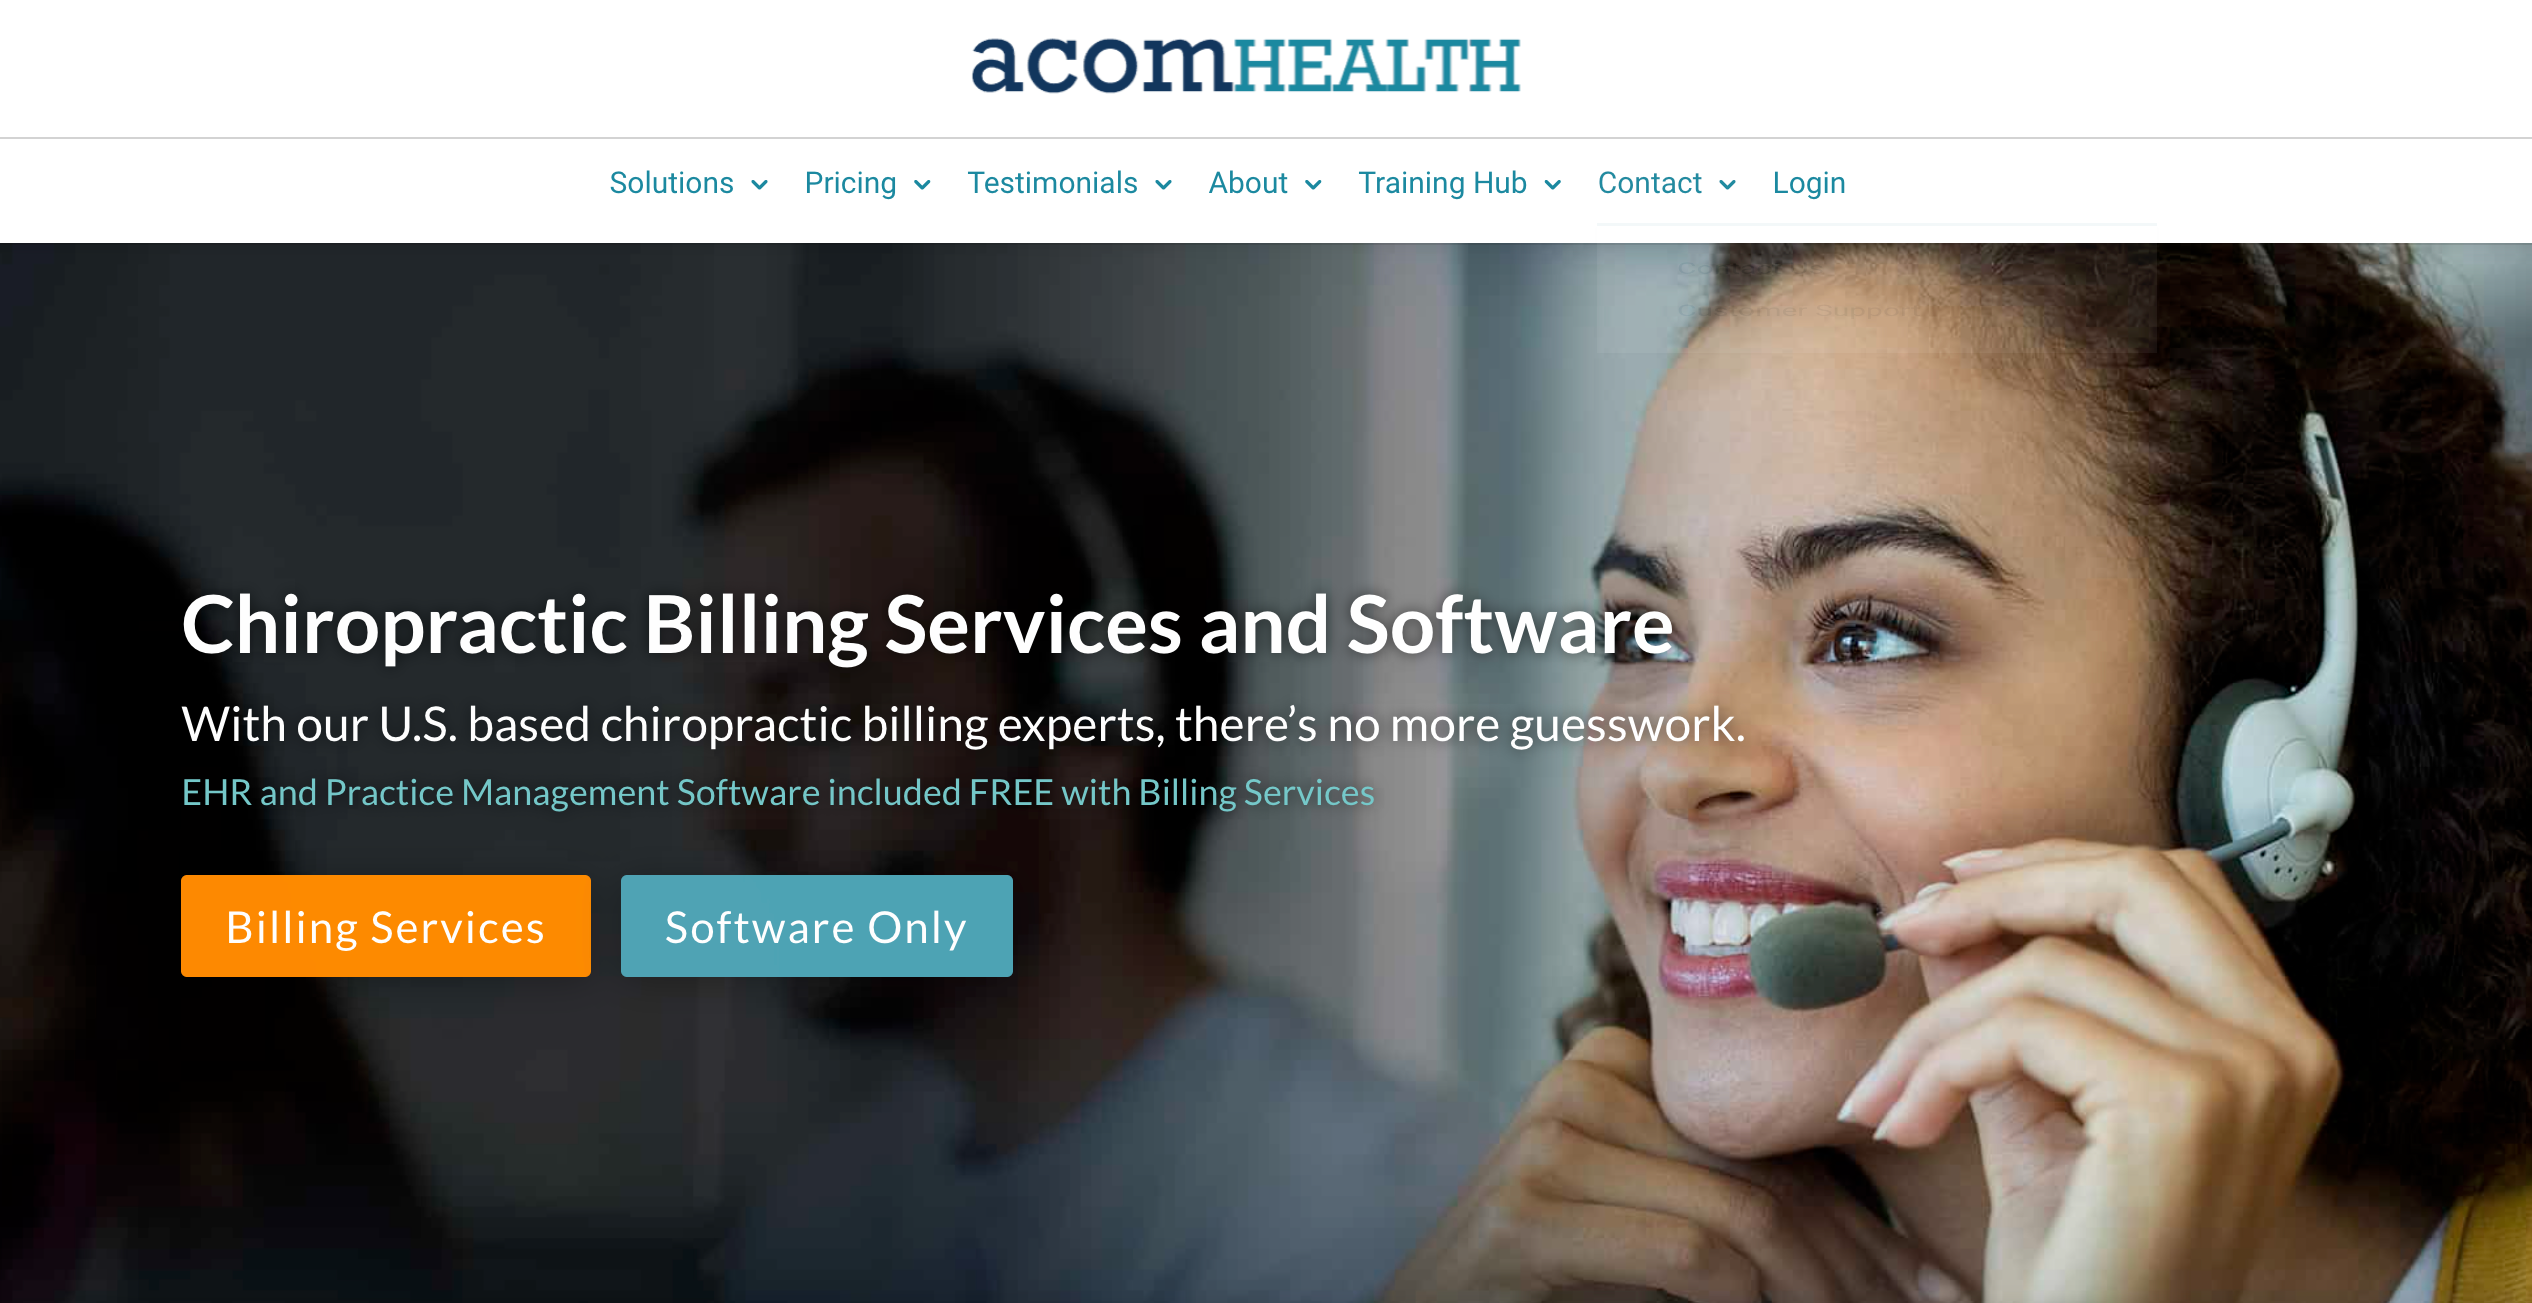 acom health software